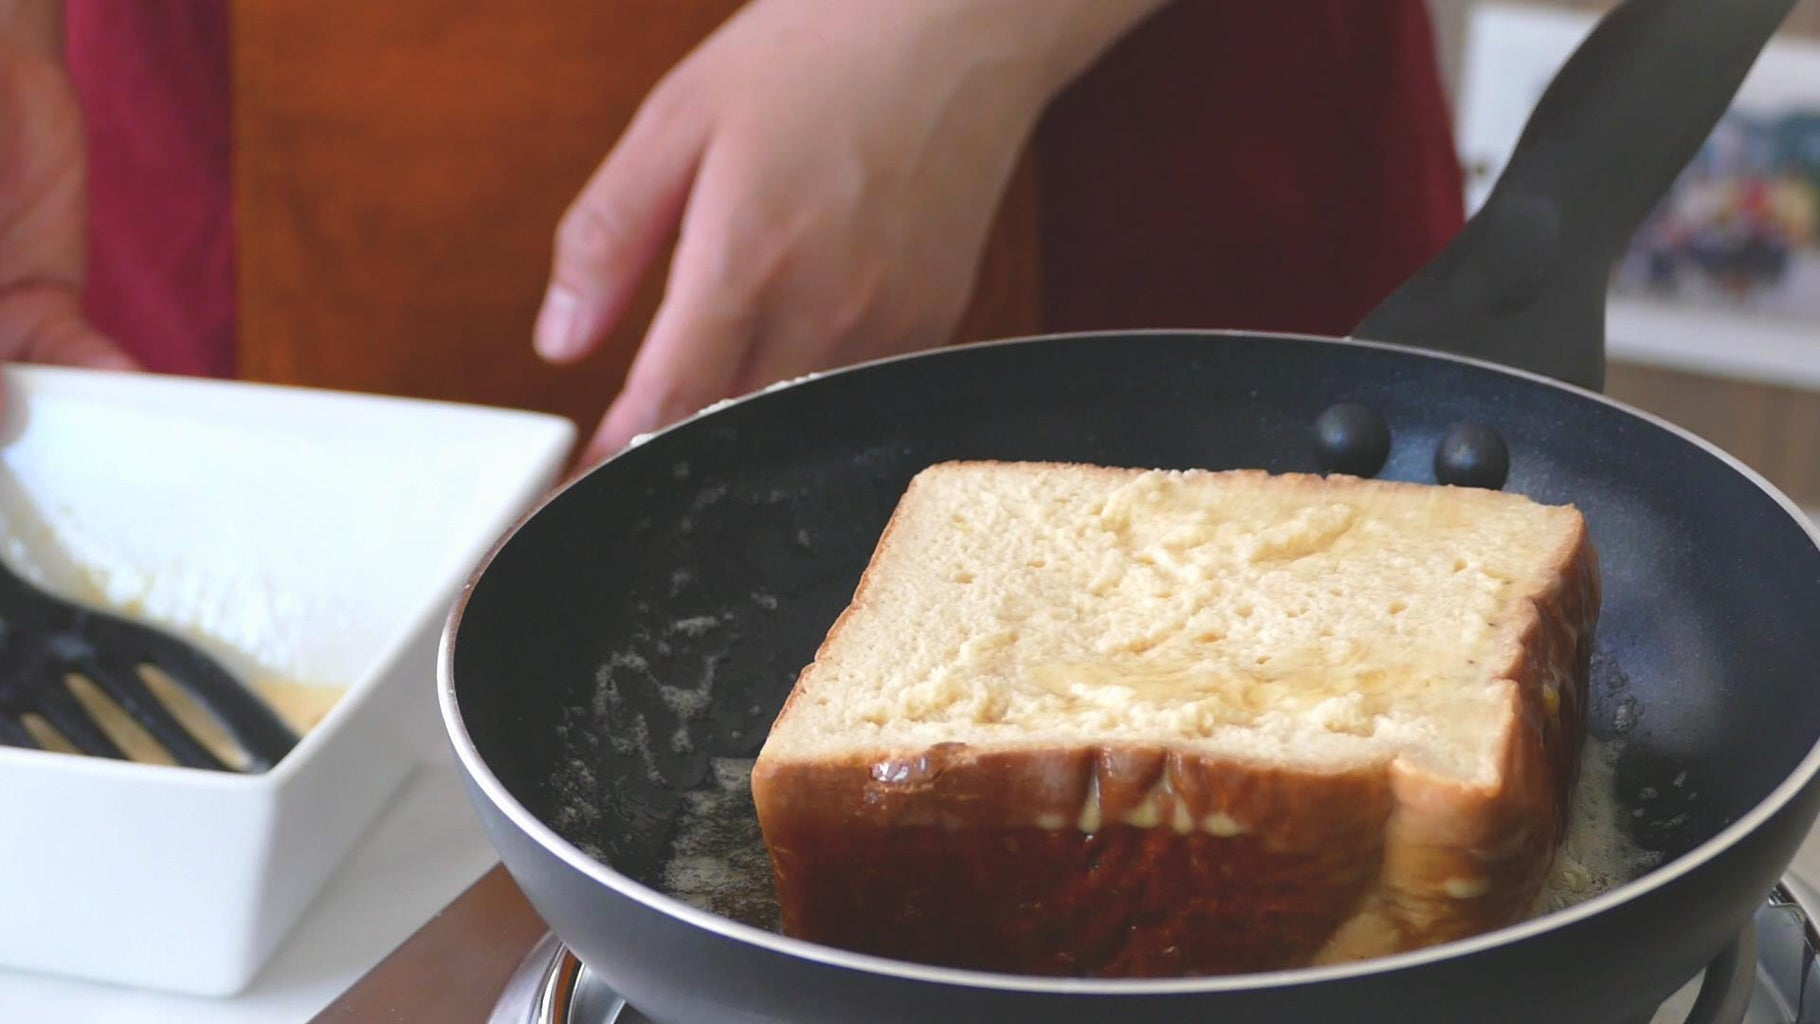 Cook the Bread